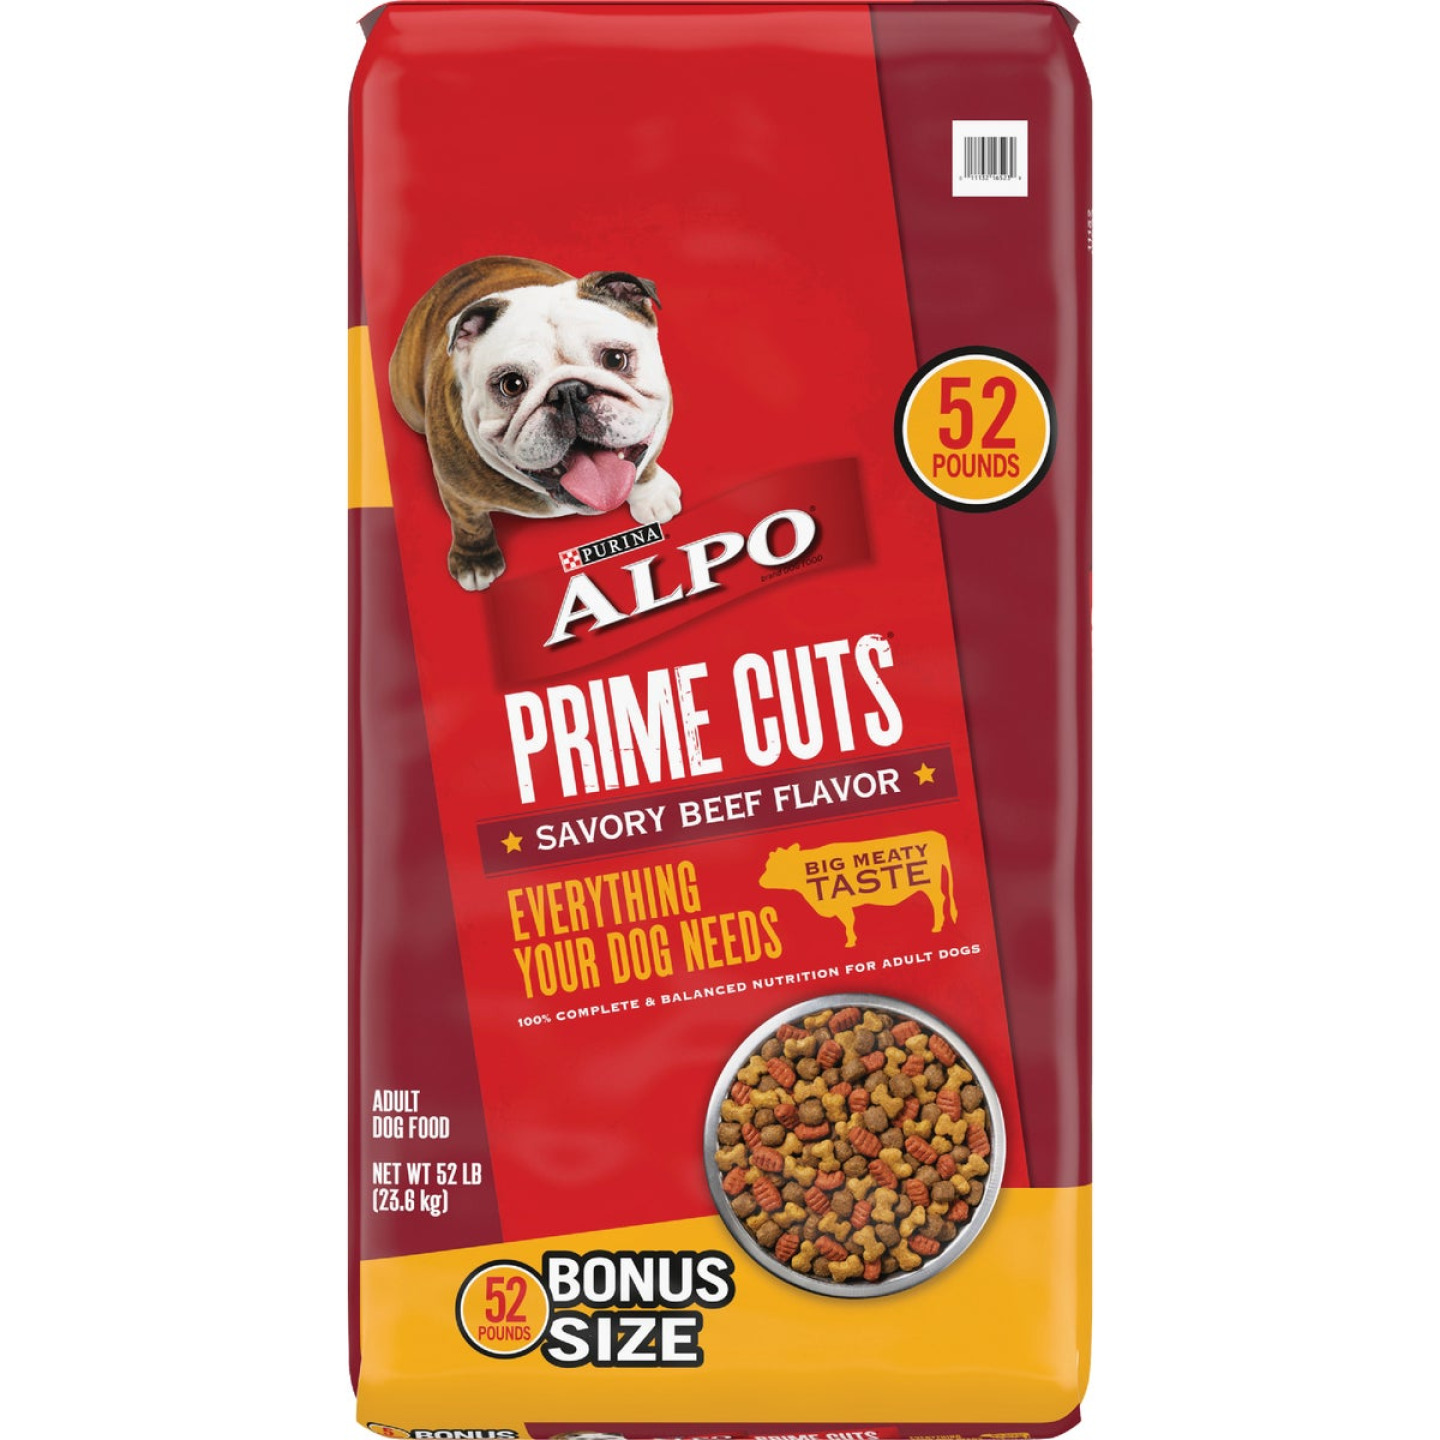 Purina Alpo Prime Cuts 52 Lb. Savory Beef Flavor Adult Dry Dog Food Image 1